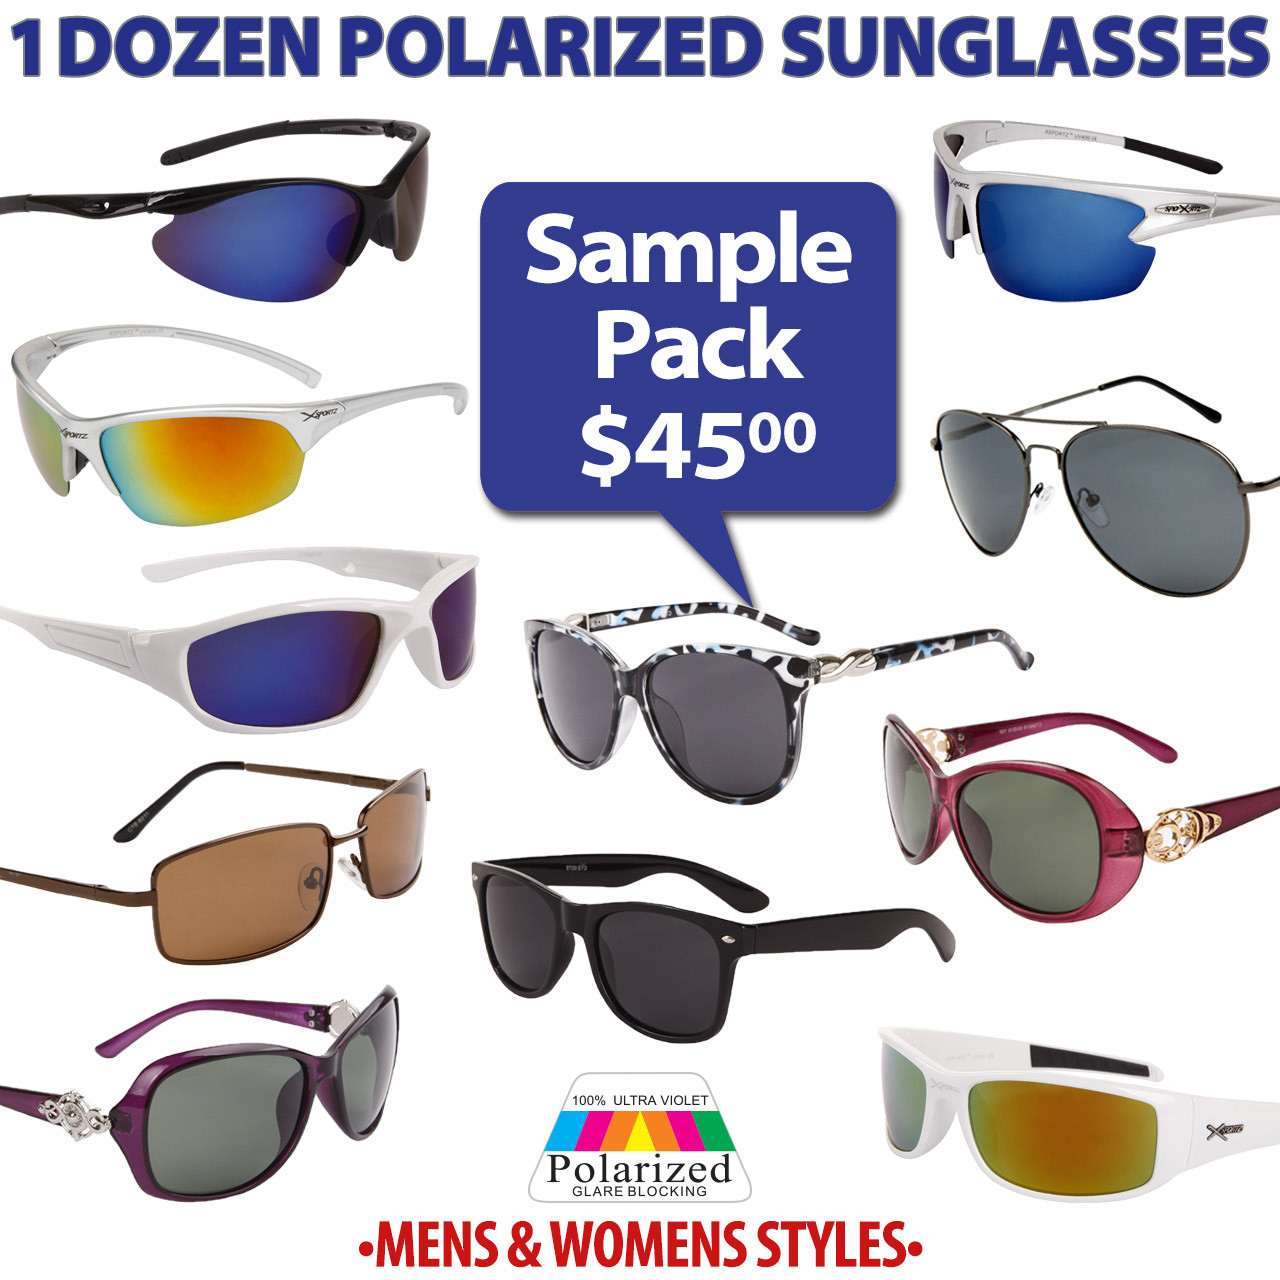 1 Dozen Sample Pack Polarized Sunglasses - Men & Women's Styles